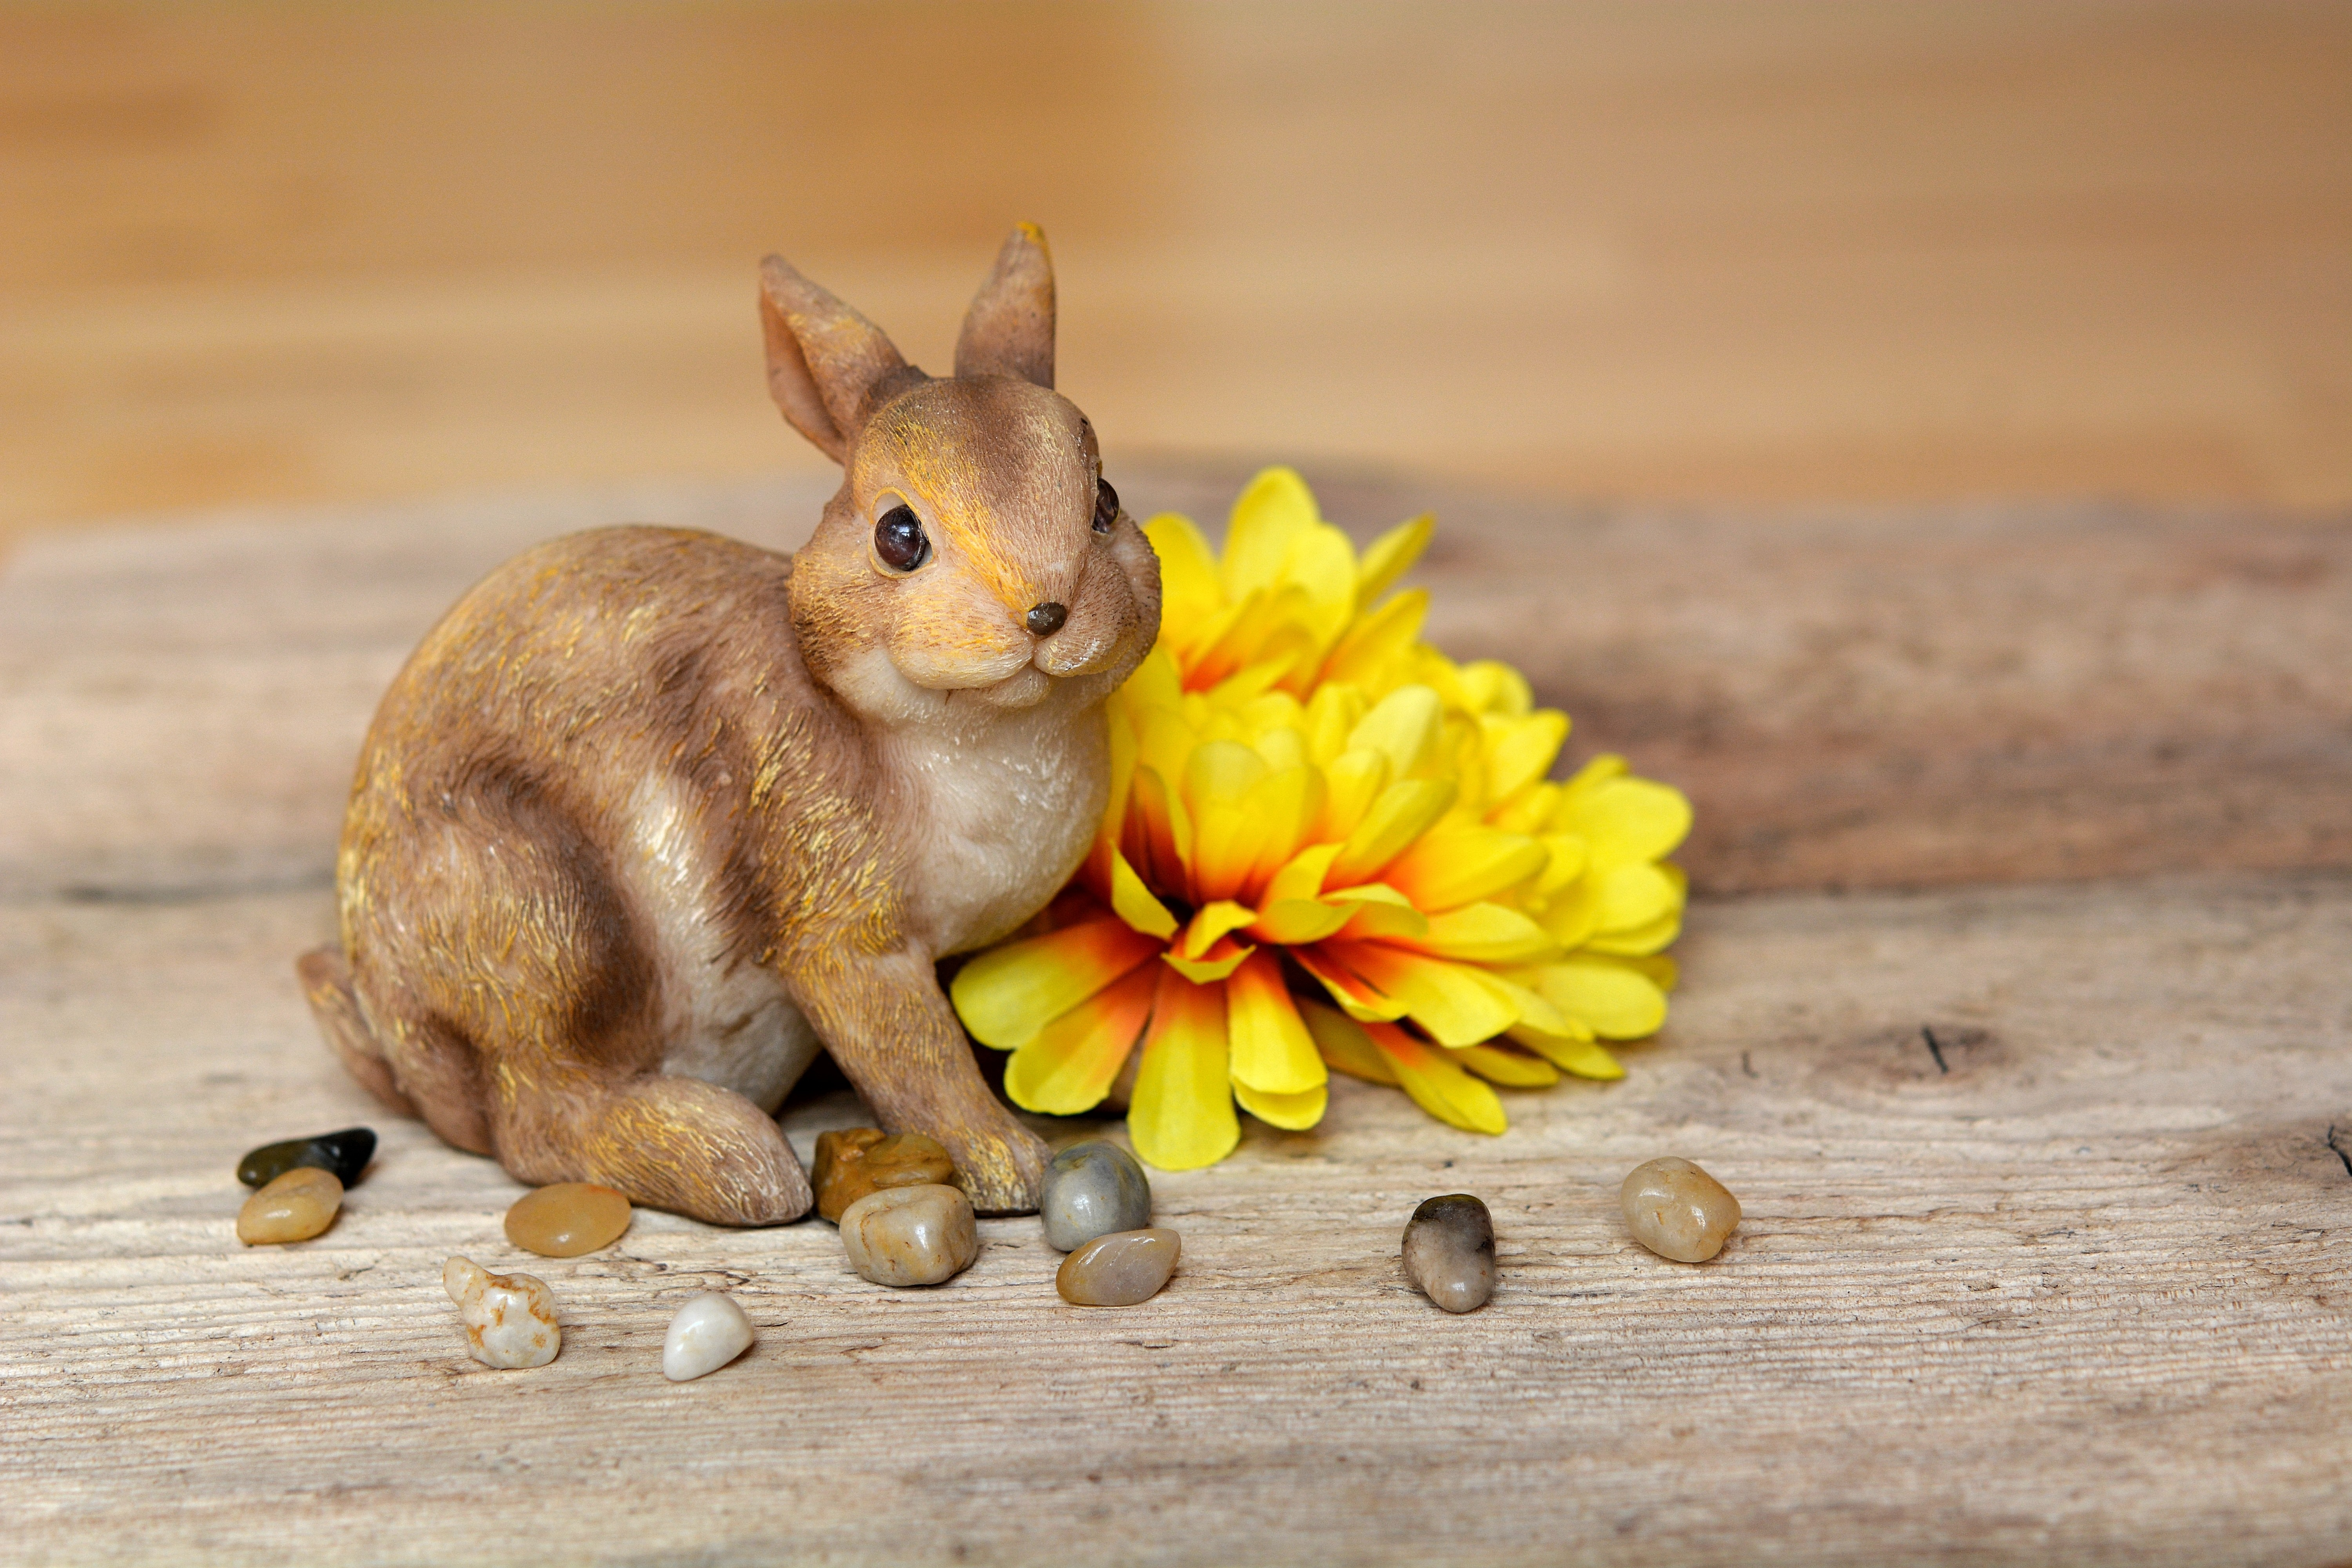 Cute, Bunny, Flower, Fresh, Freshness, HQ Photo